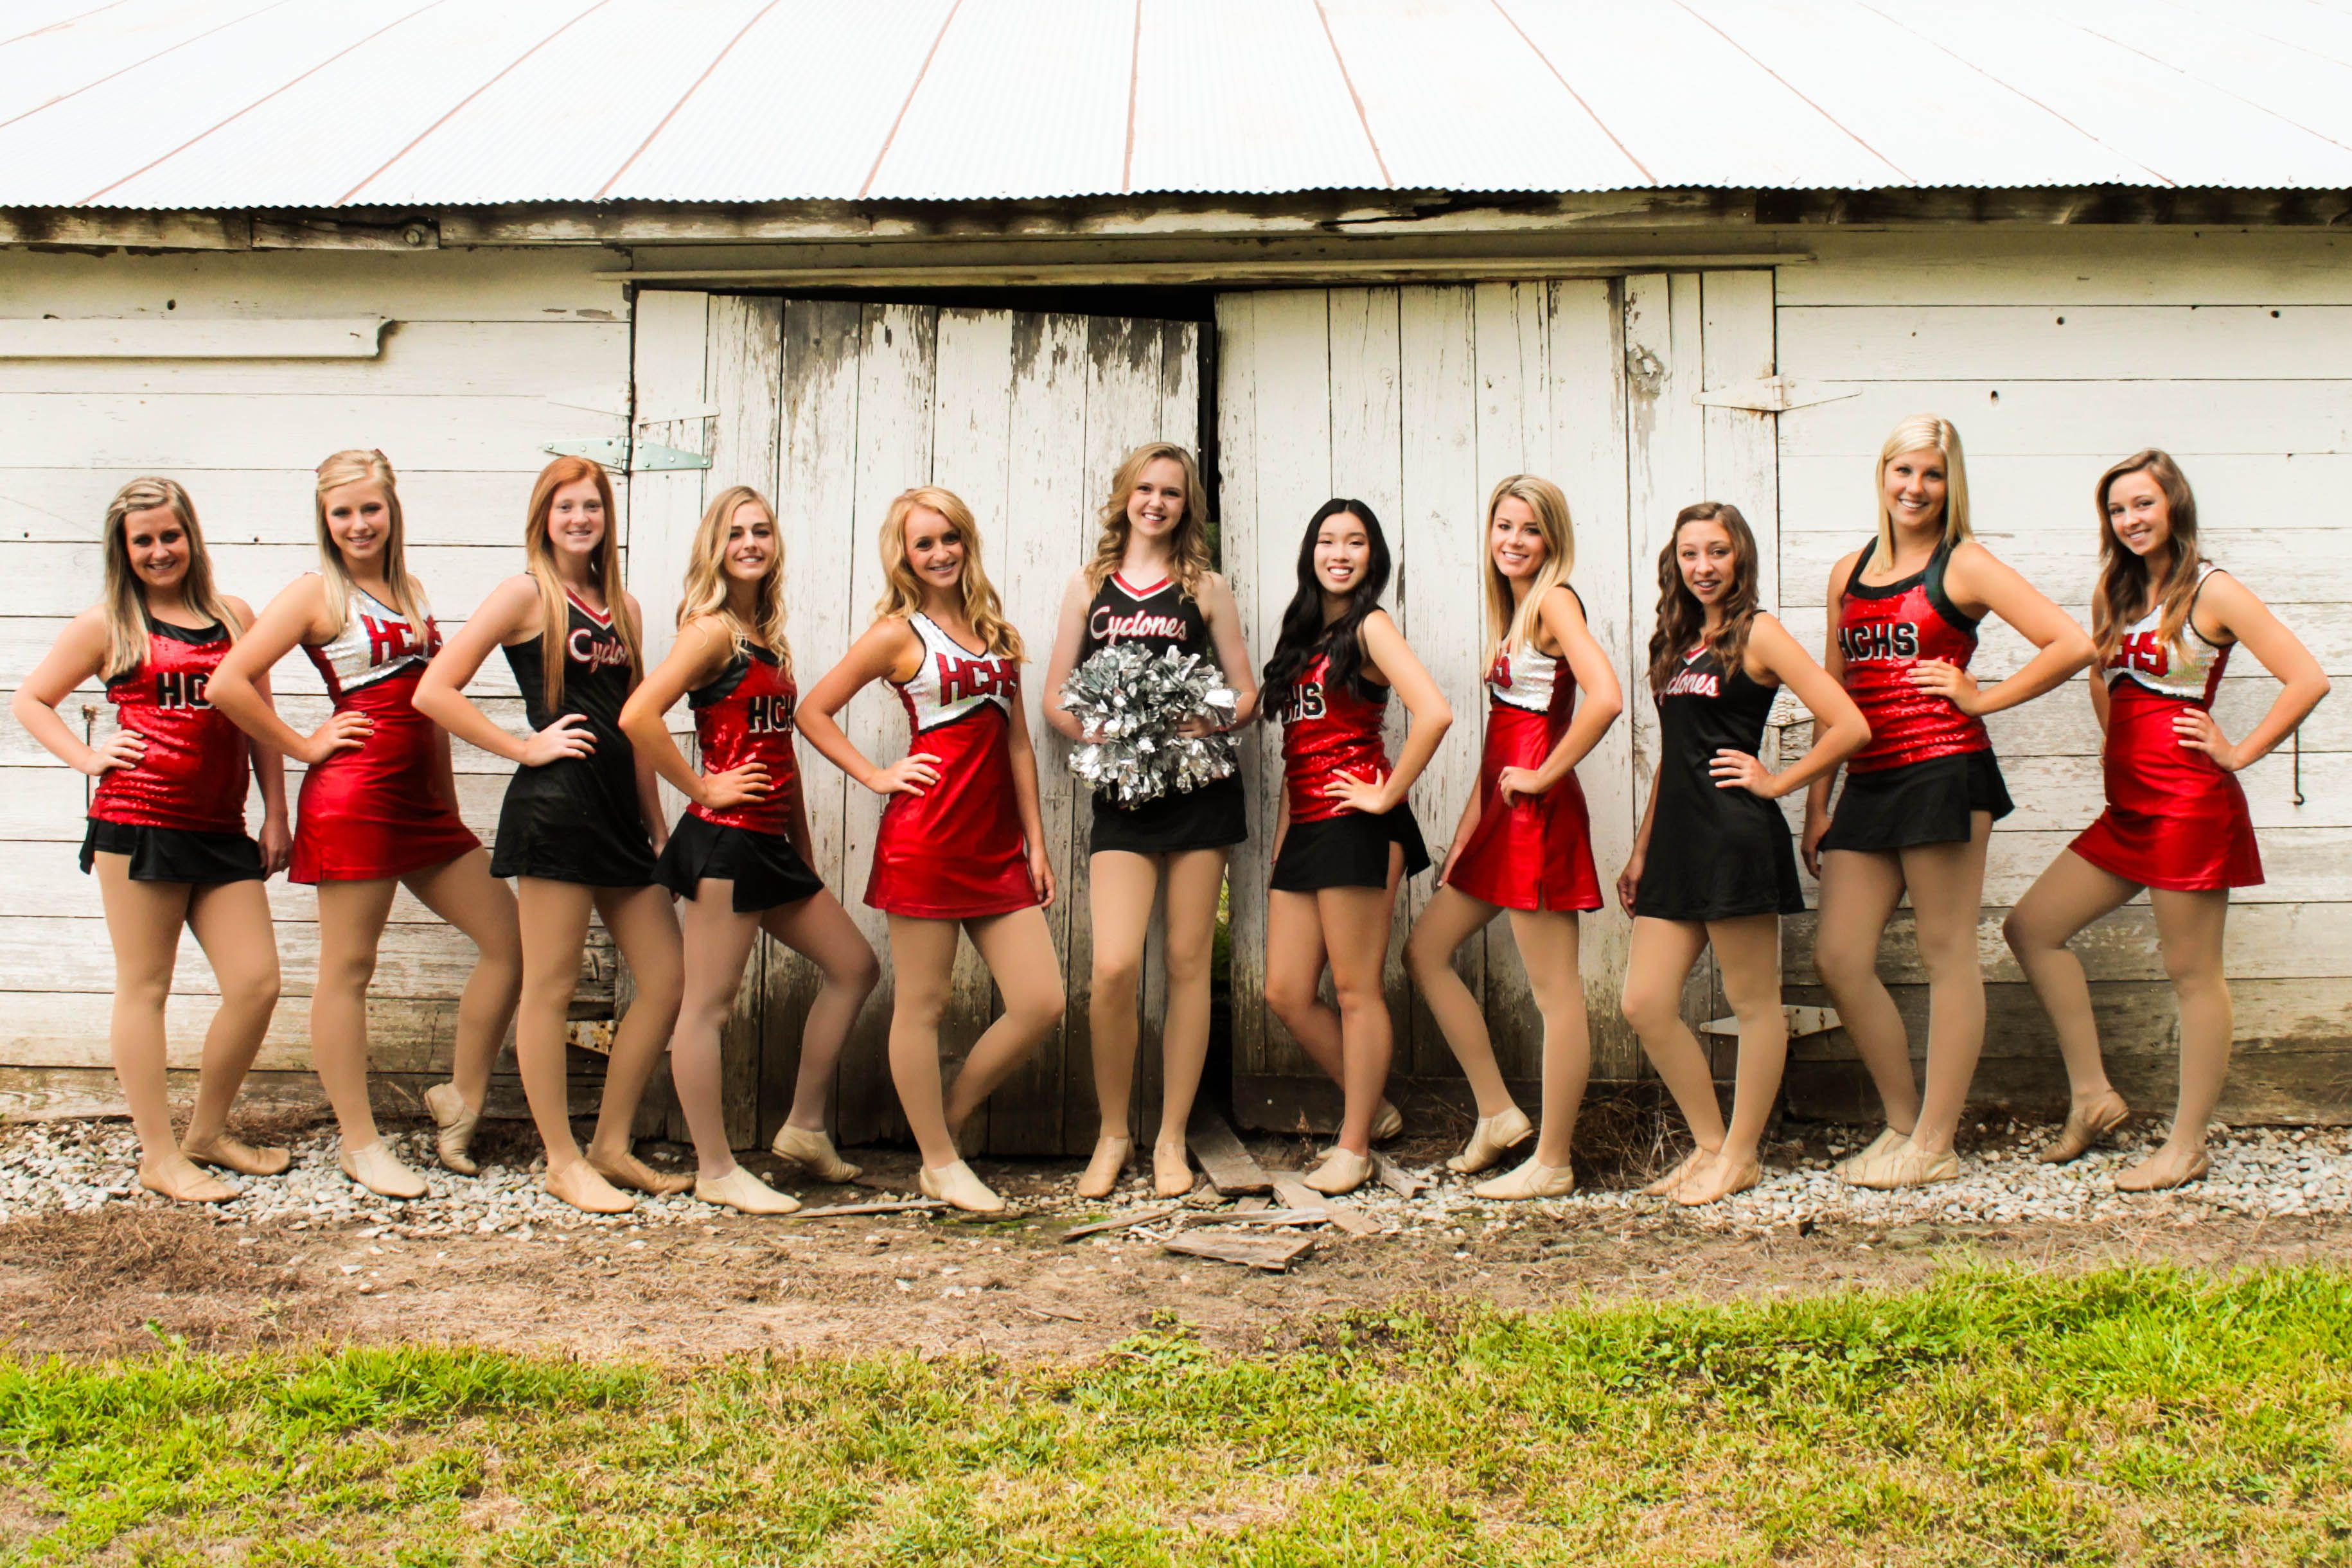 Kjs Photography Cheer Picture Poses Dance Team Photos Cheer Team Pictures